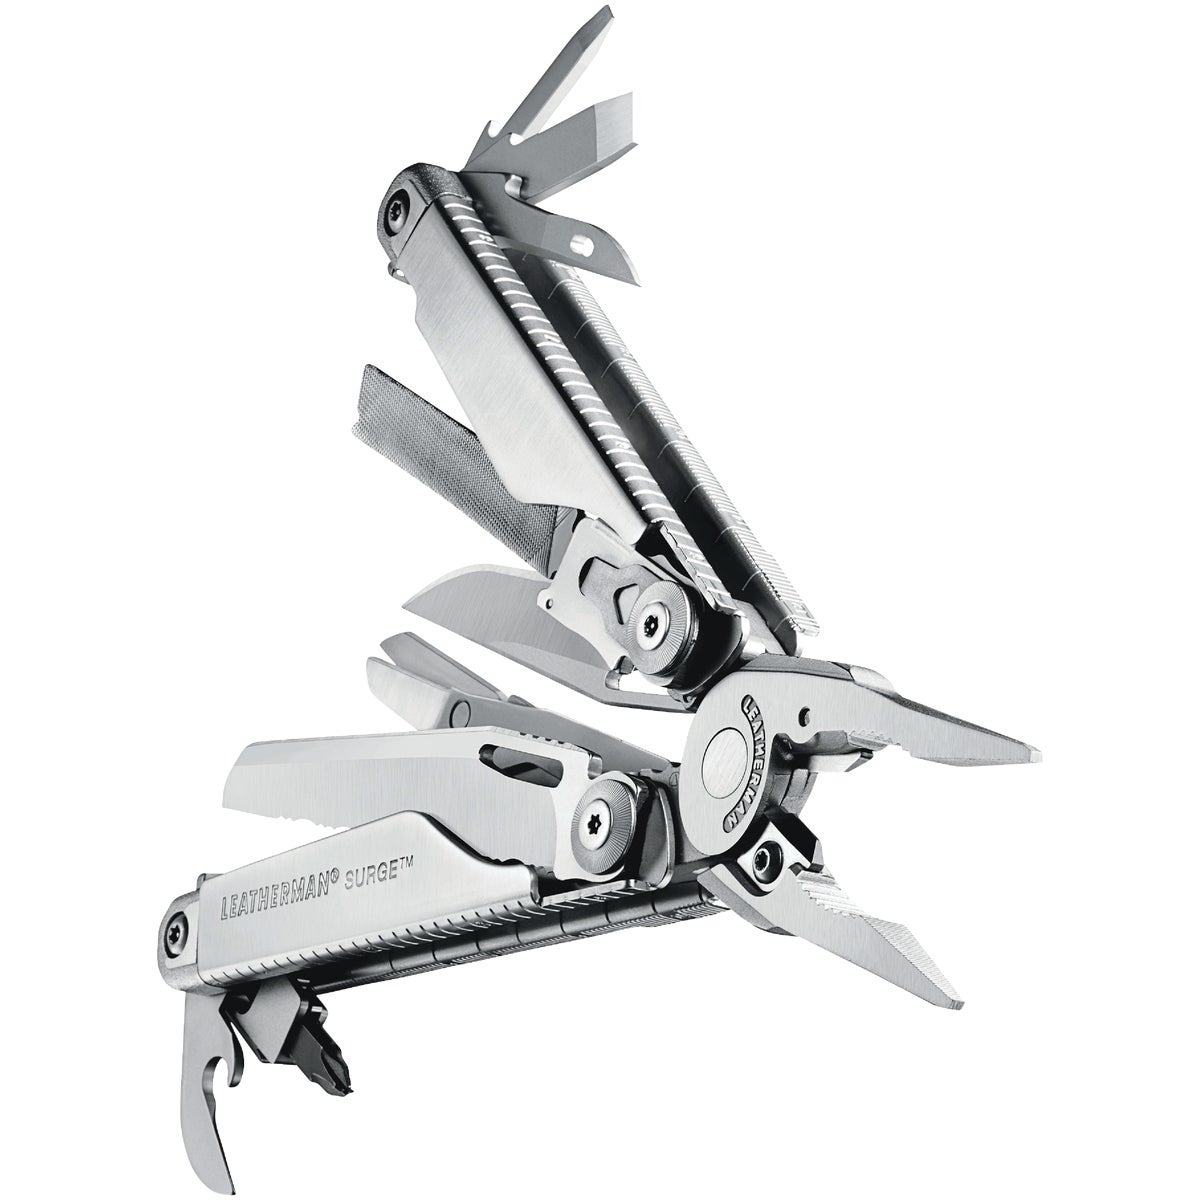 SURGE MULTI TOOL - 830160 by Leatherman Tool